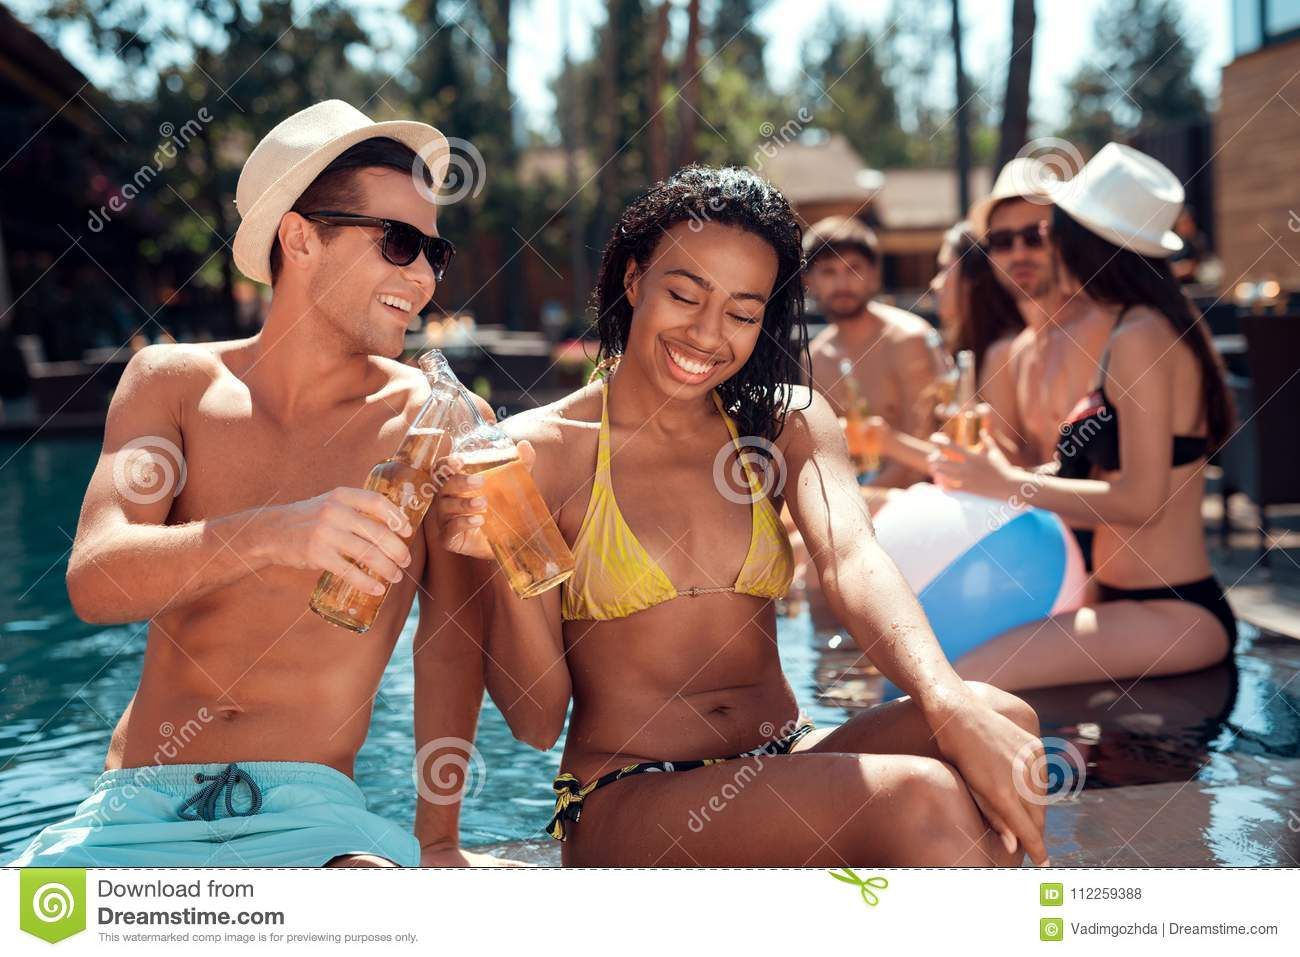 Young man is sunglasses and cheerful woman cheering with beer bottles in swimming pool.